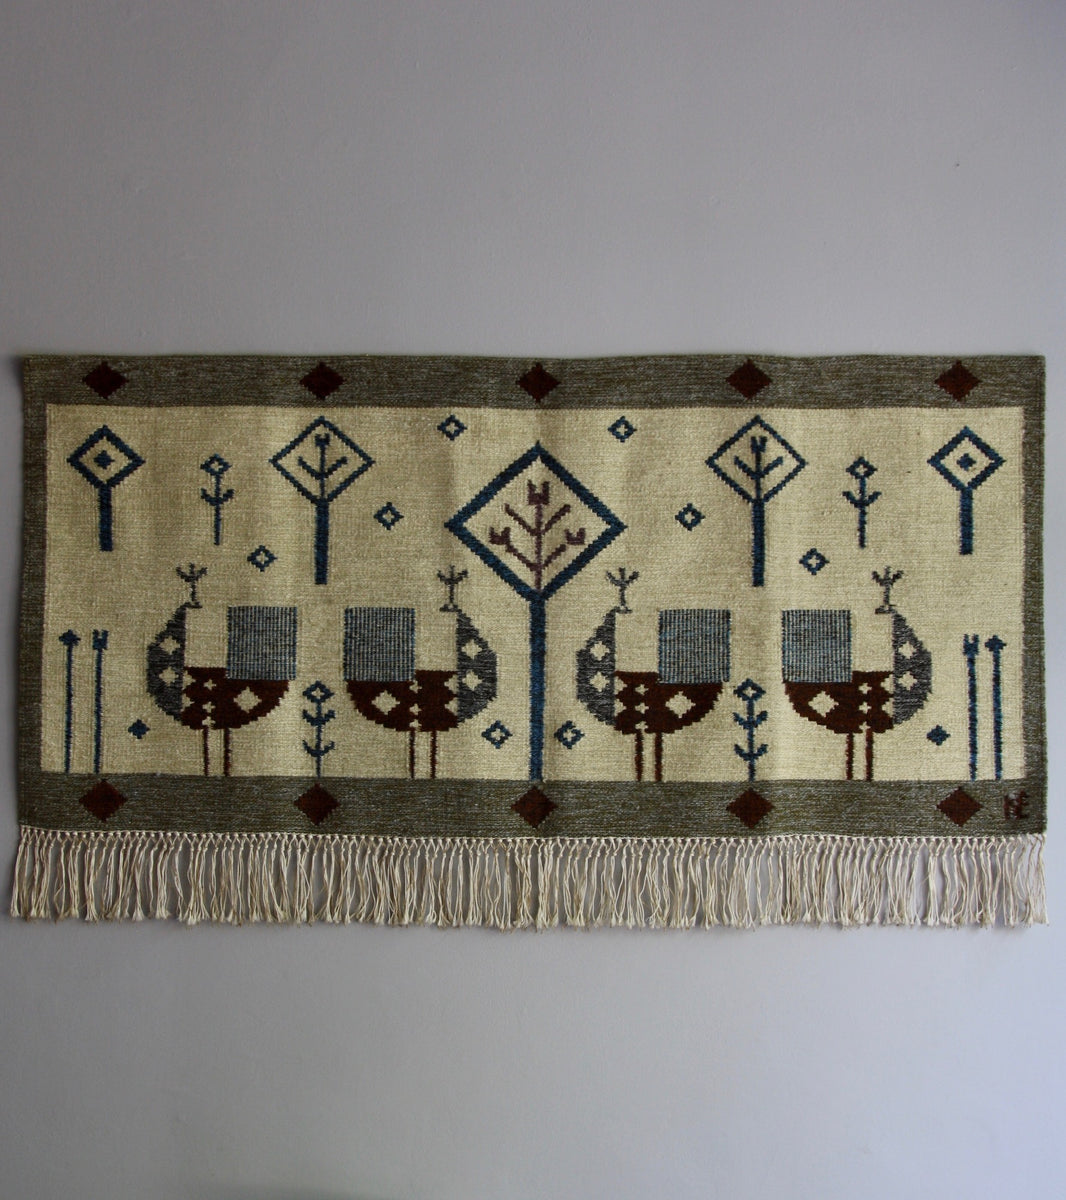 Handwoven Swedish wallhanging 1950s tassels cockerels geometric brown